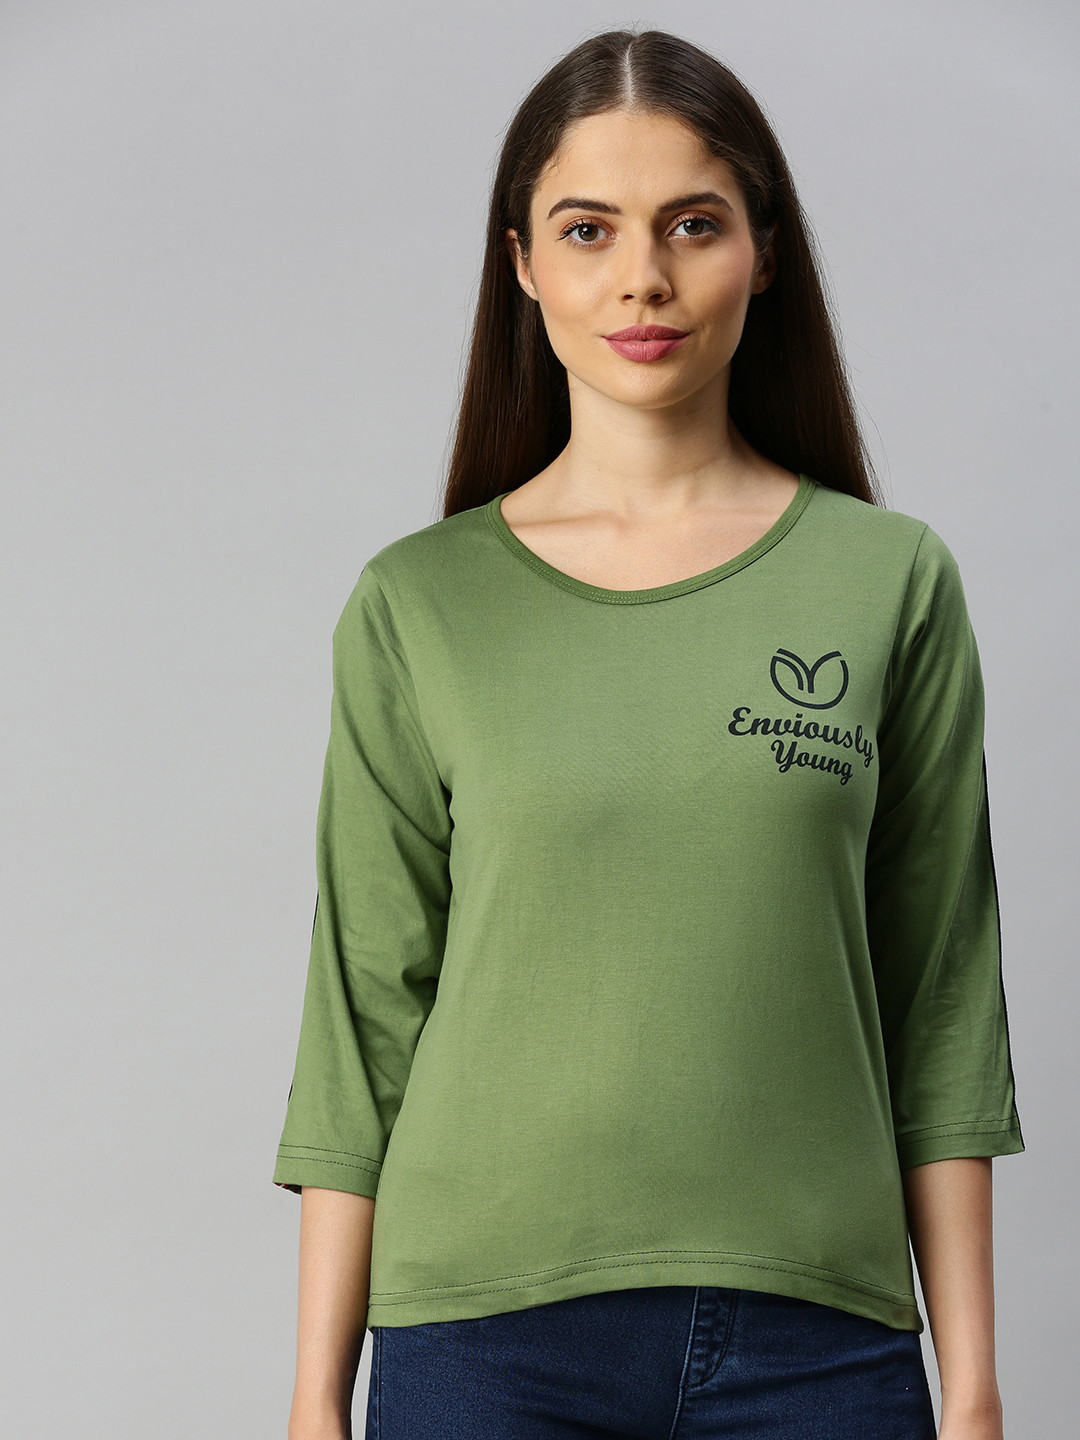 Enviously Young | Enviously Young Olive Three-Quarter Sleeves Boat Neck Solid Tshirt